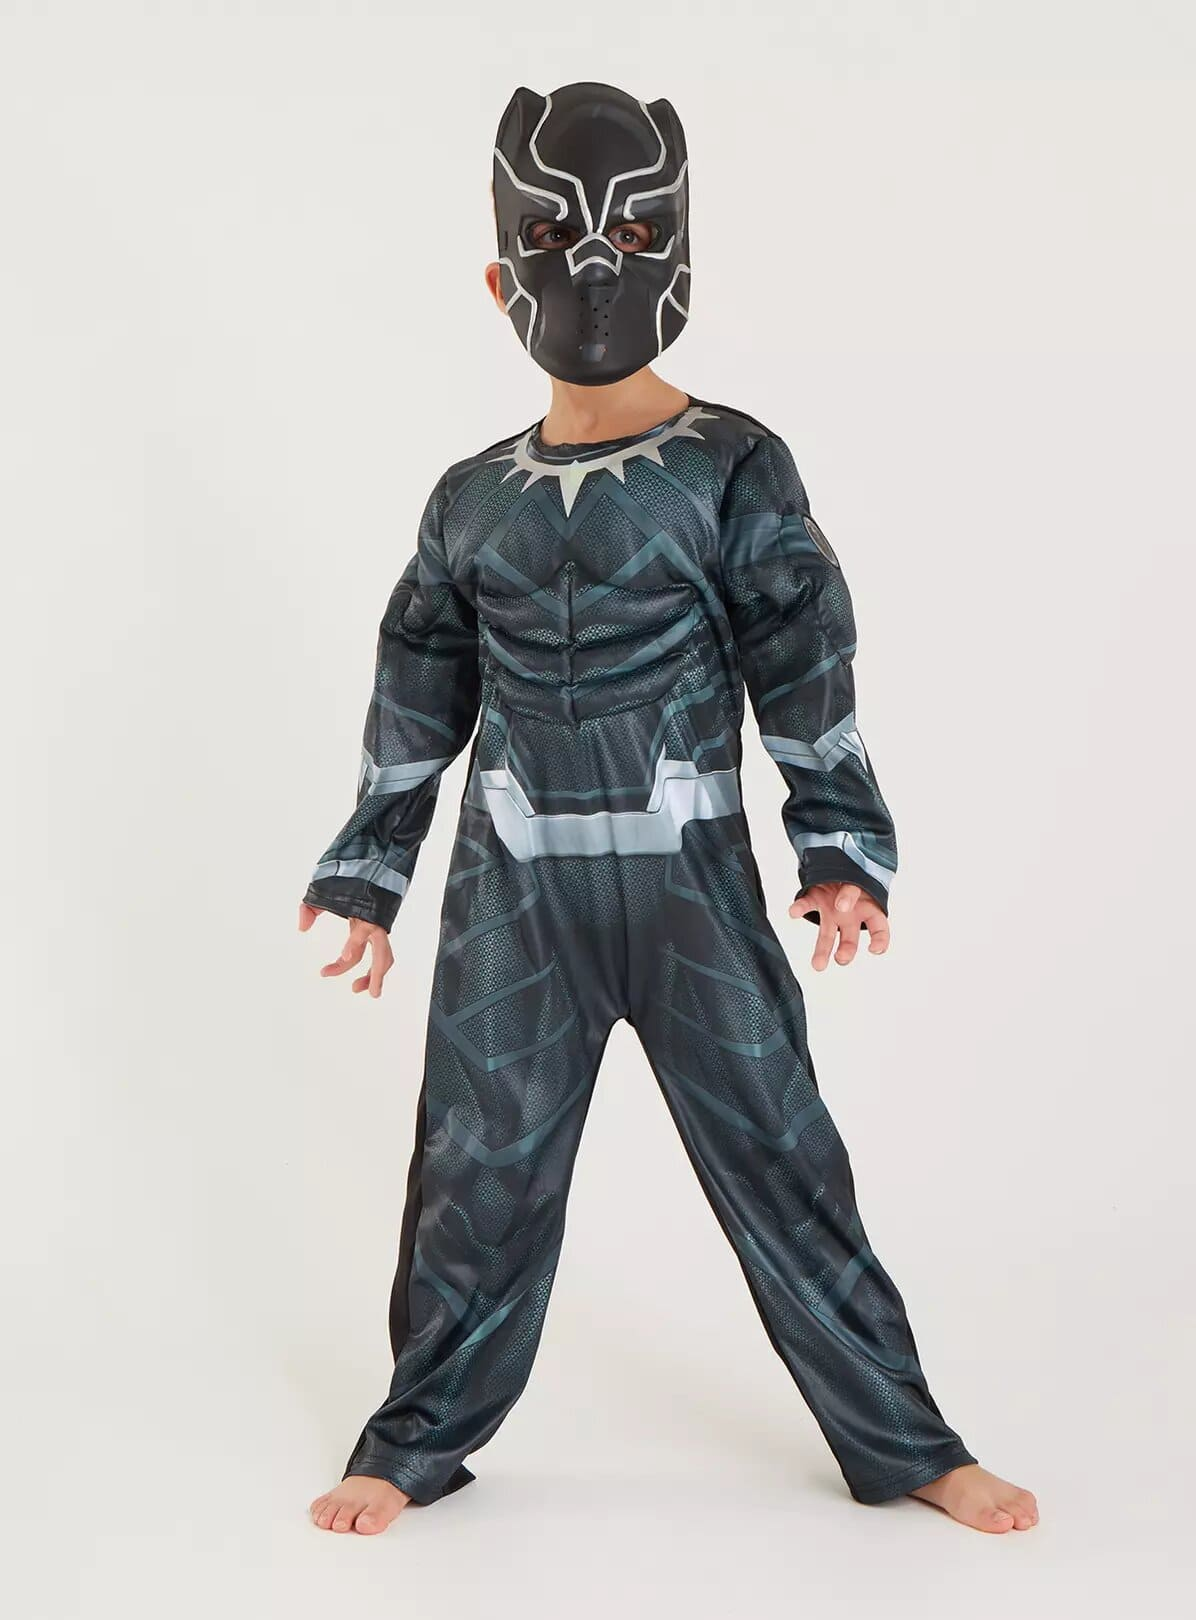 Disney Marvel Black Panther Costume & Mask.